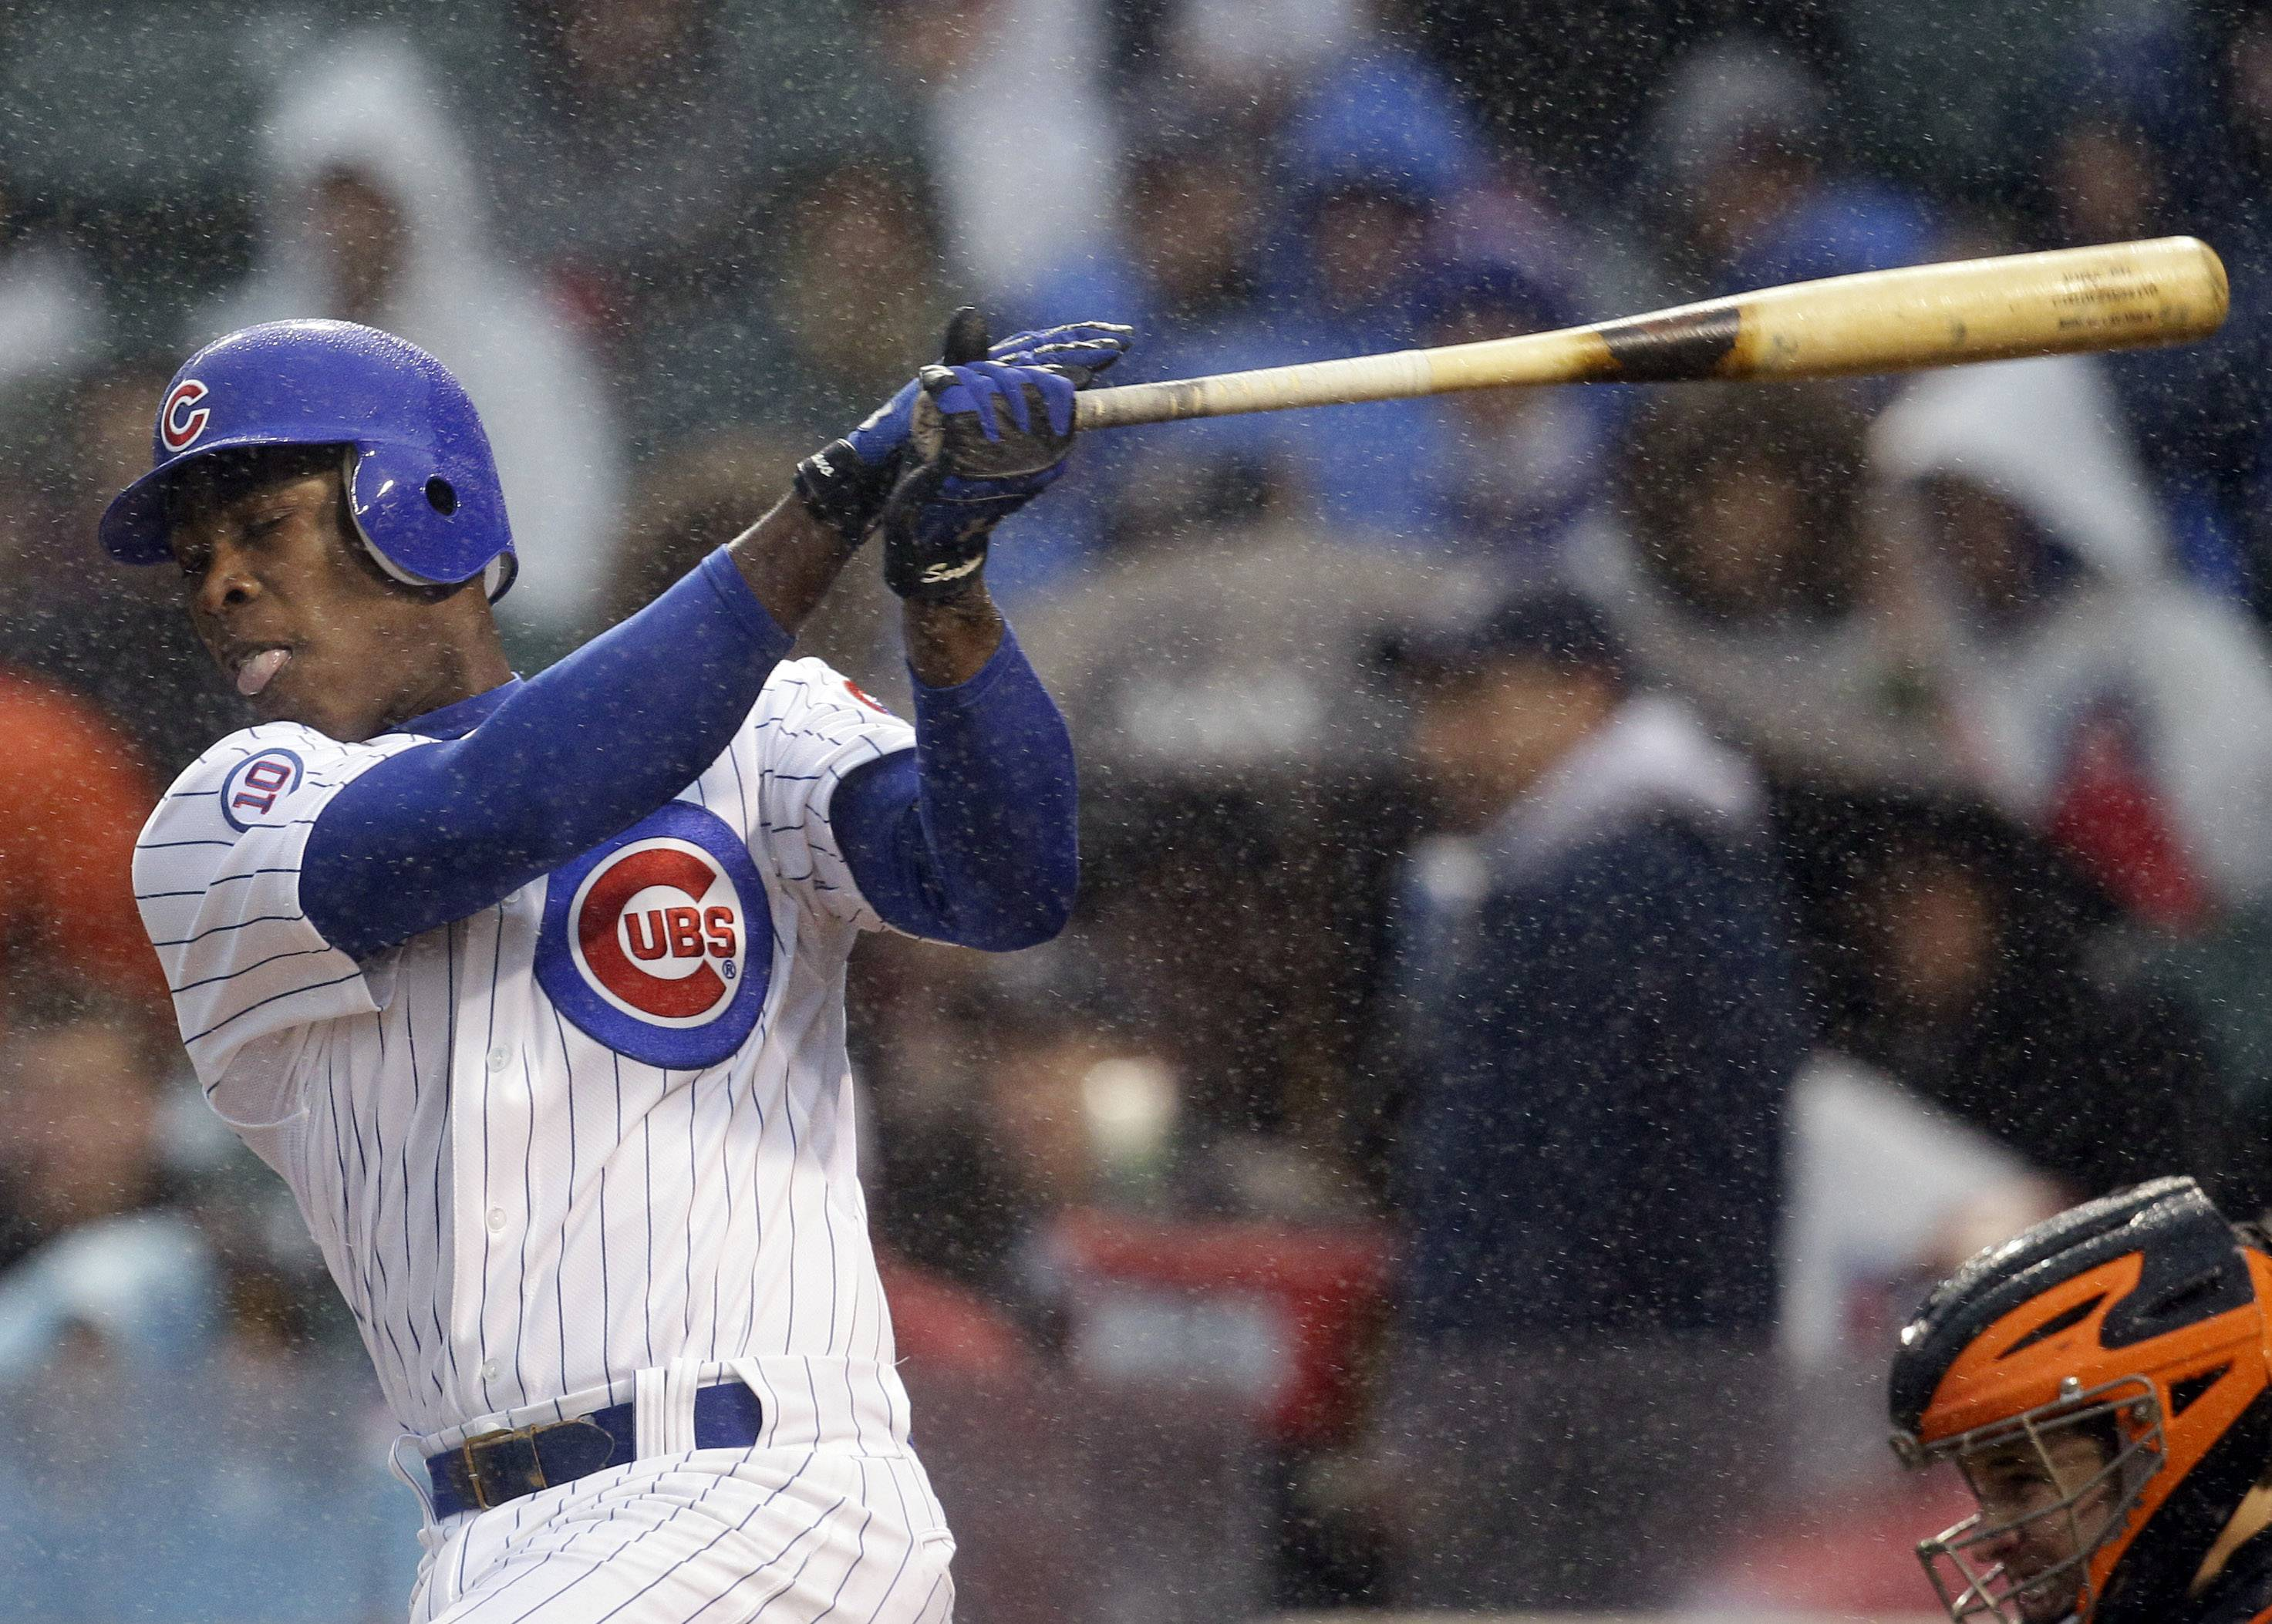 The Cubs put left fielder Alfonso Soriano on the 15-day disabled list Tuesday, a day after he strained his left quadriceps trying to beat out a groundball.